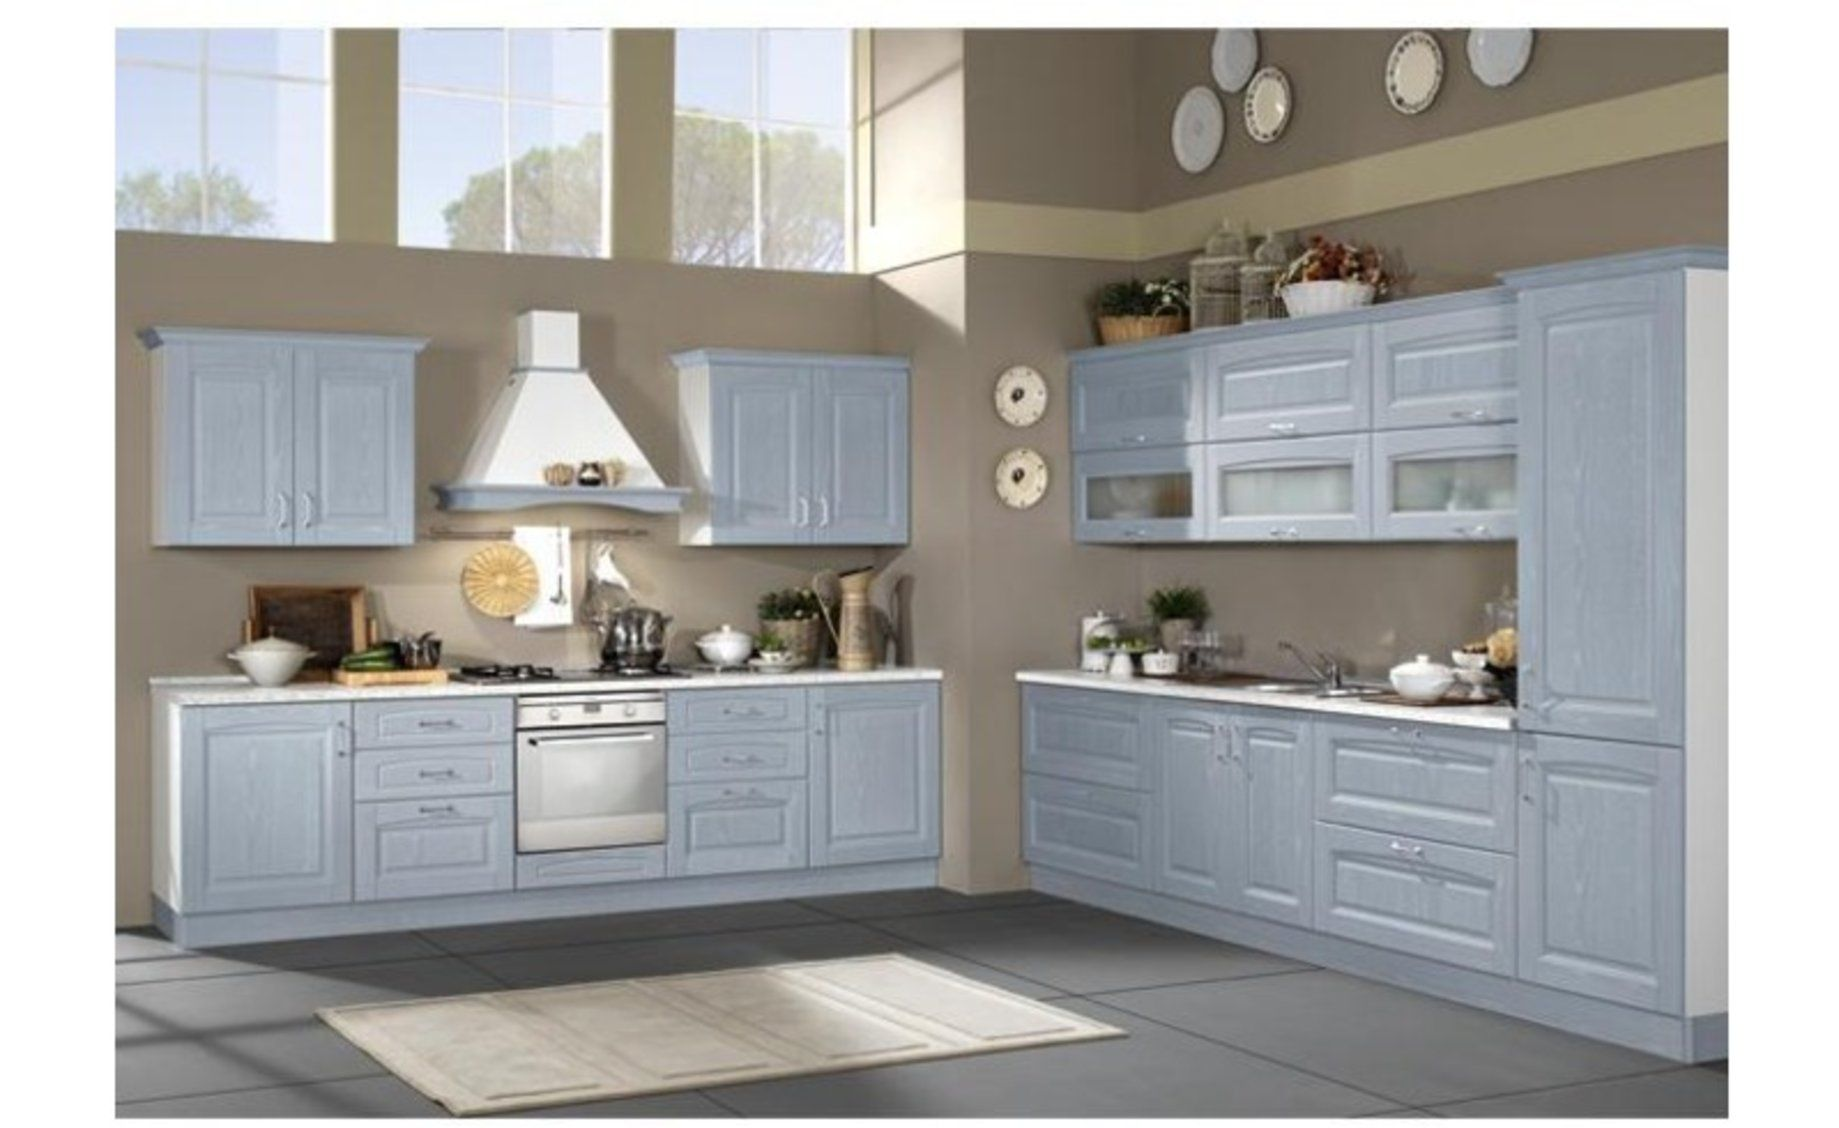 Cucina componibile Adele – Conforama | new Home Inspiration ...